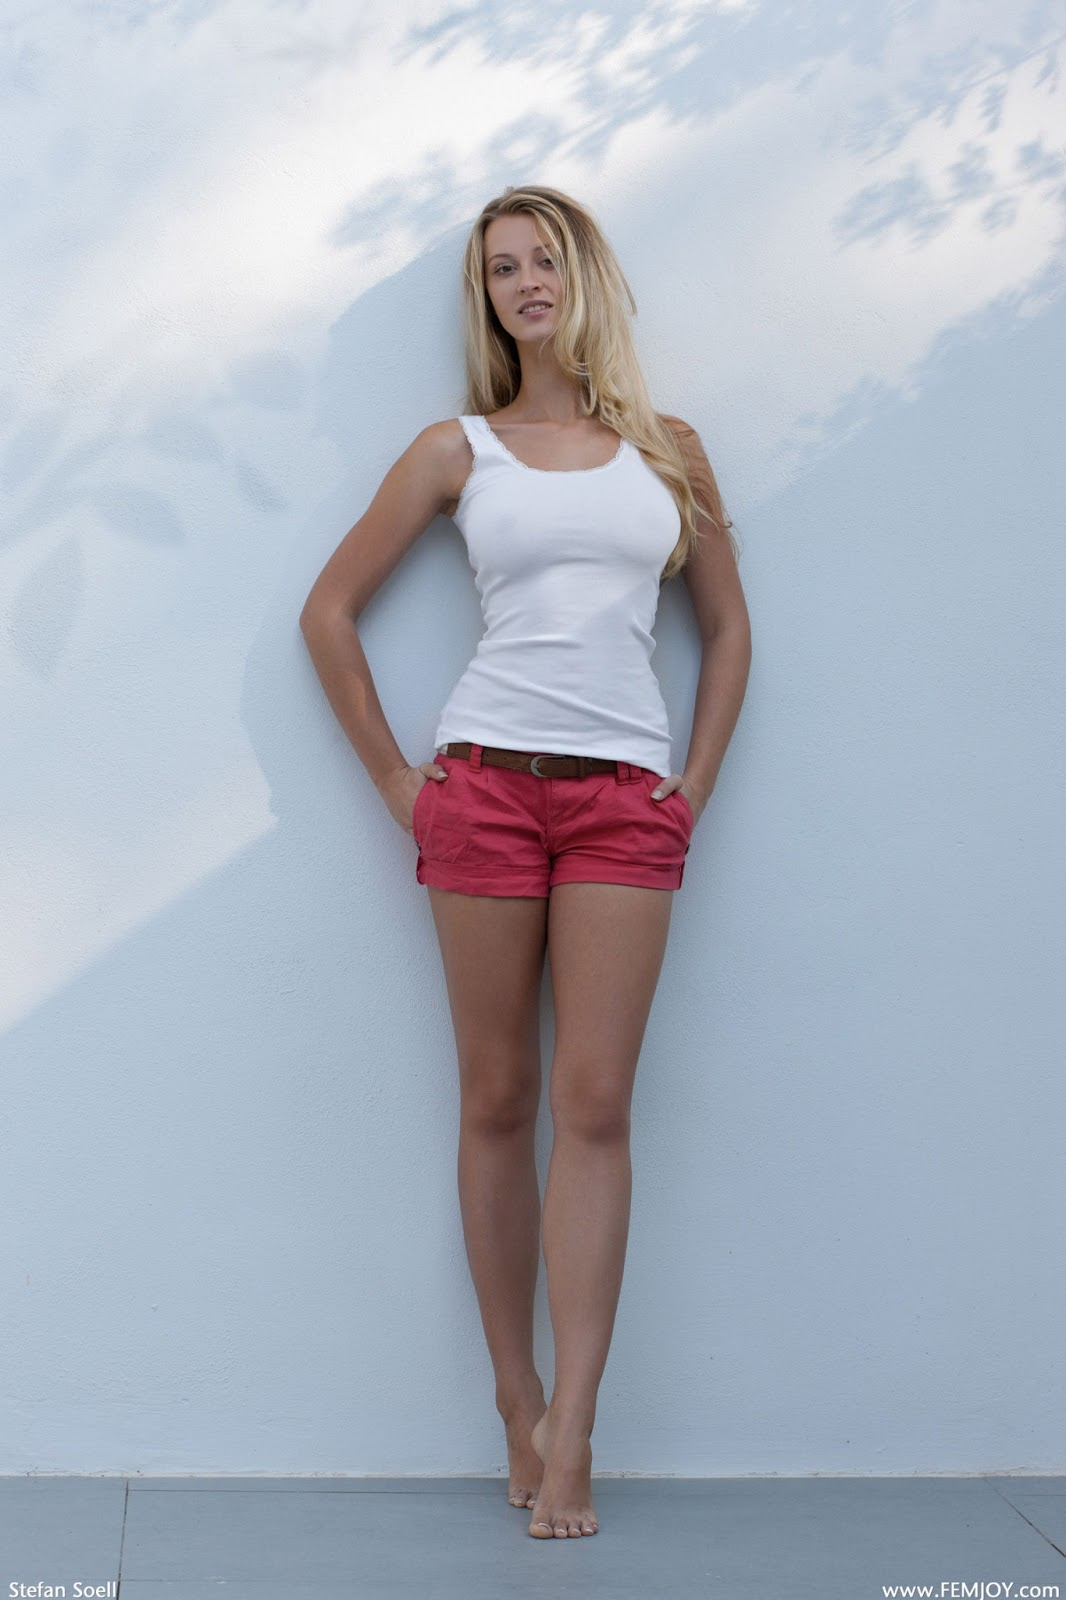 Entplugged carisha latest nude hot photos gallery and for Lovely hot pics